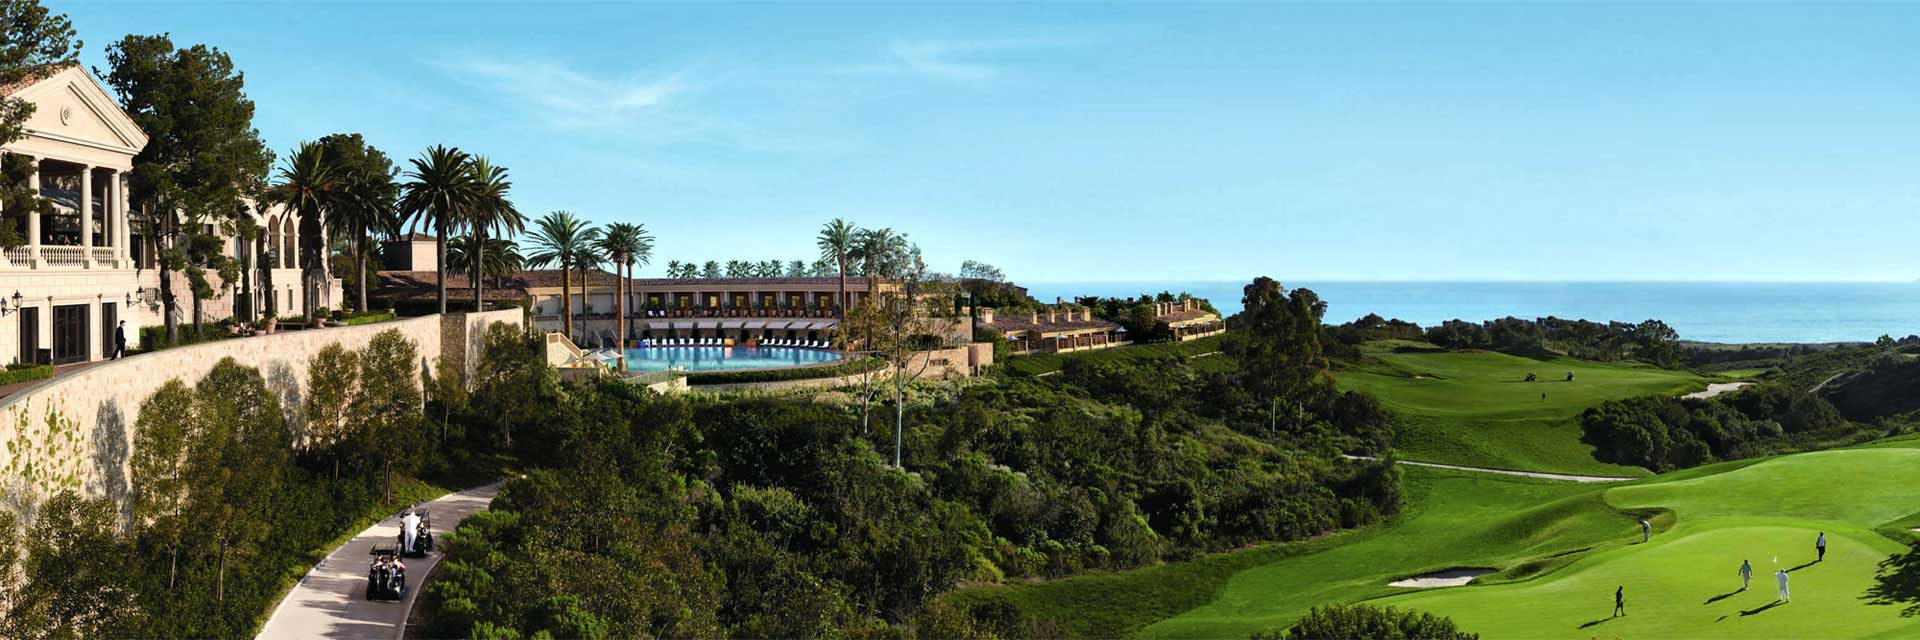 Pelican Hill - Newport Beach, CA: Oceanview Bungalow/Villa - Oceanside golf and breakfast with Resort Credit  for $489 per person, per day!